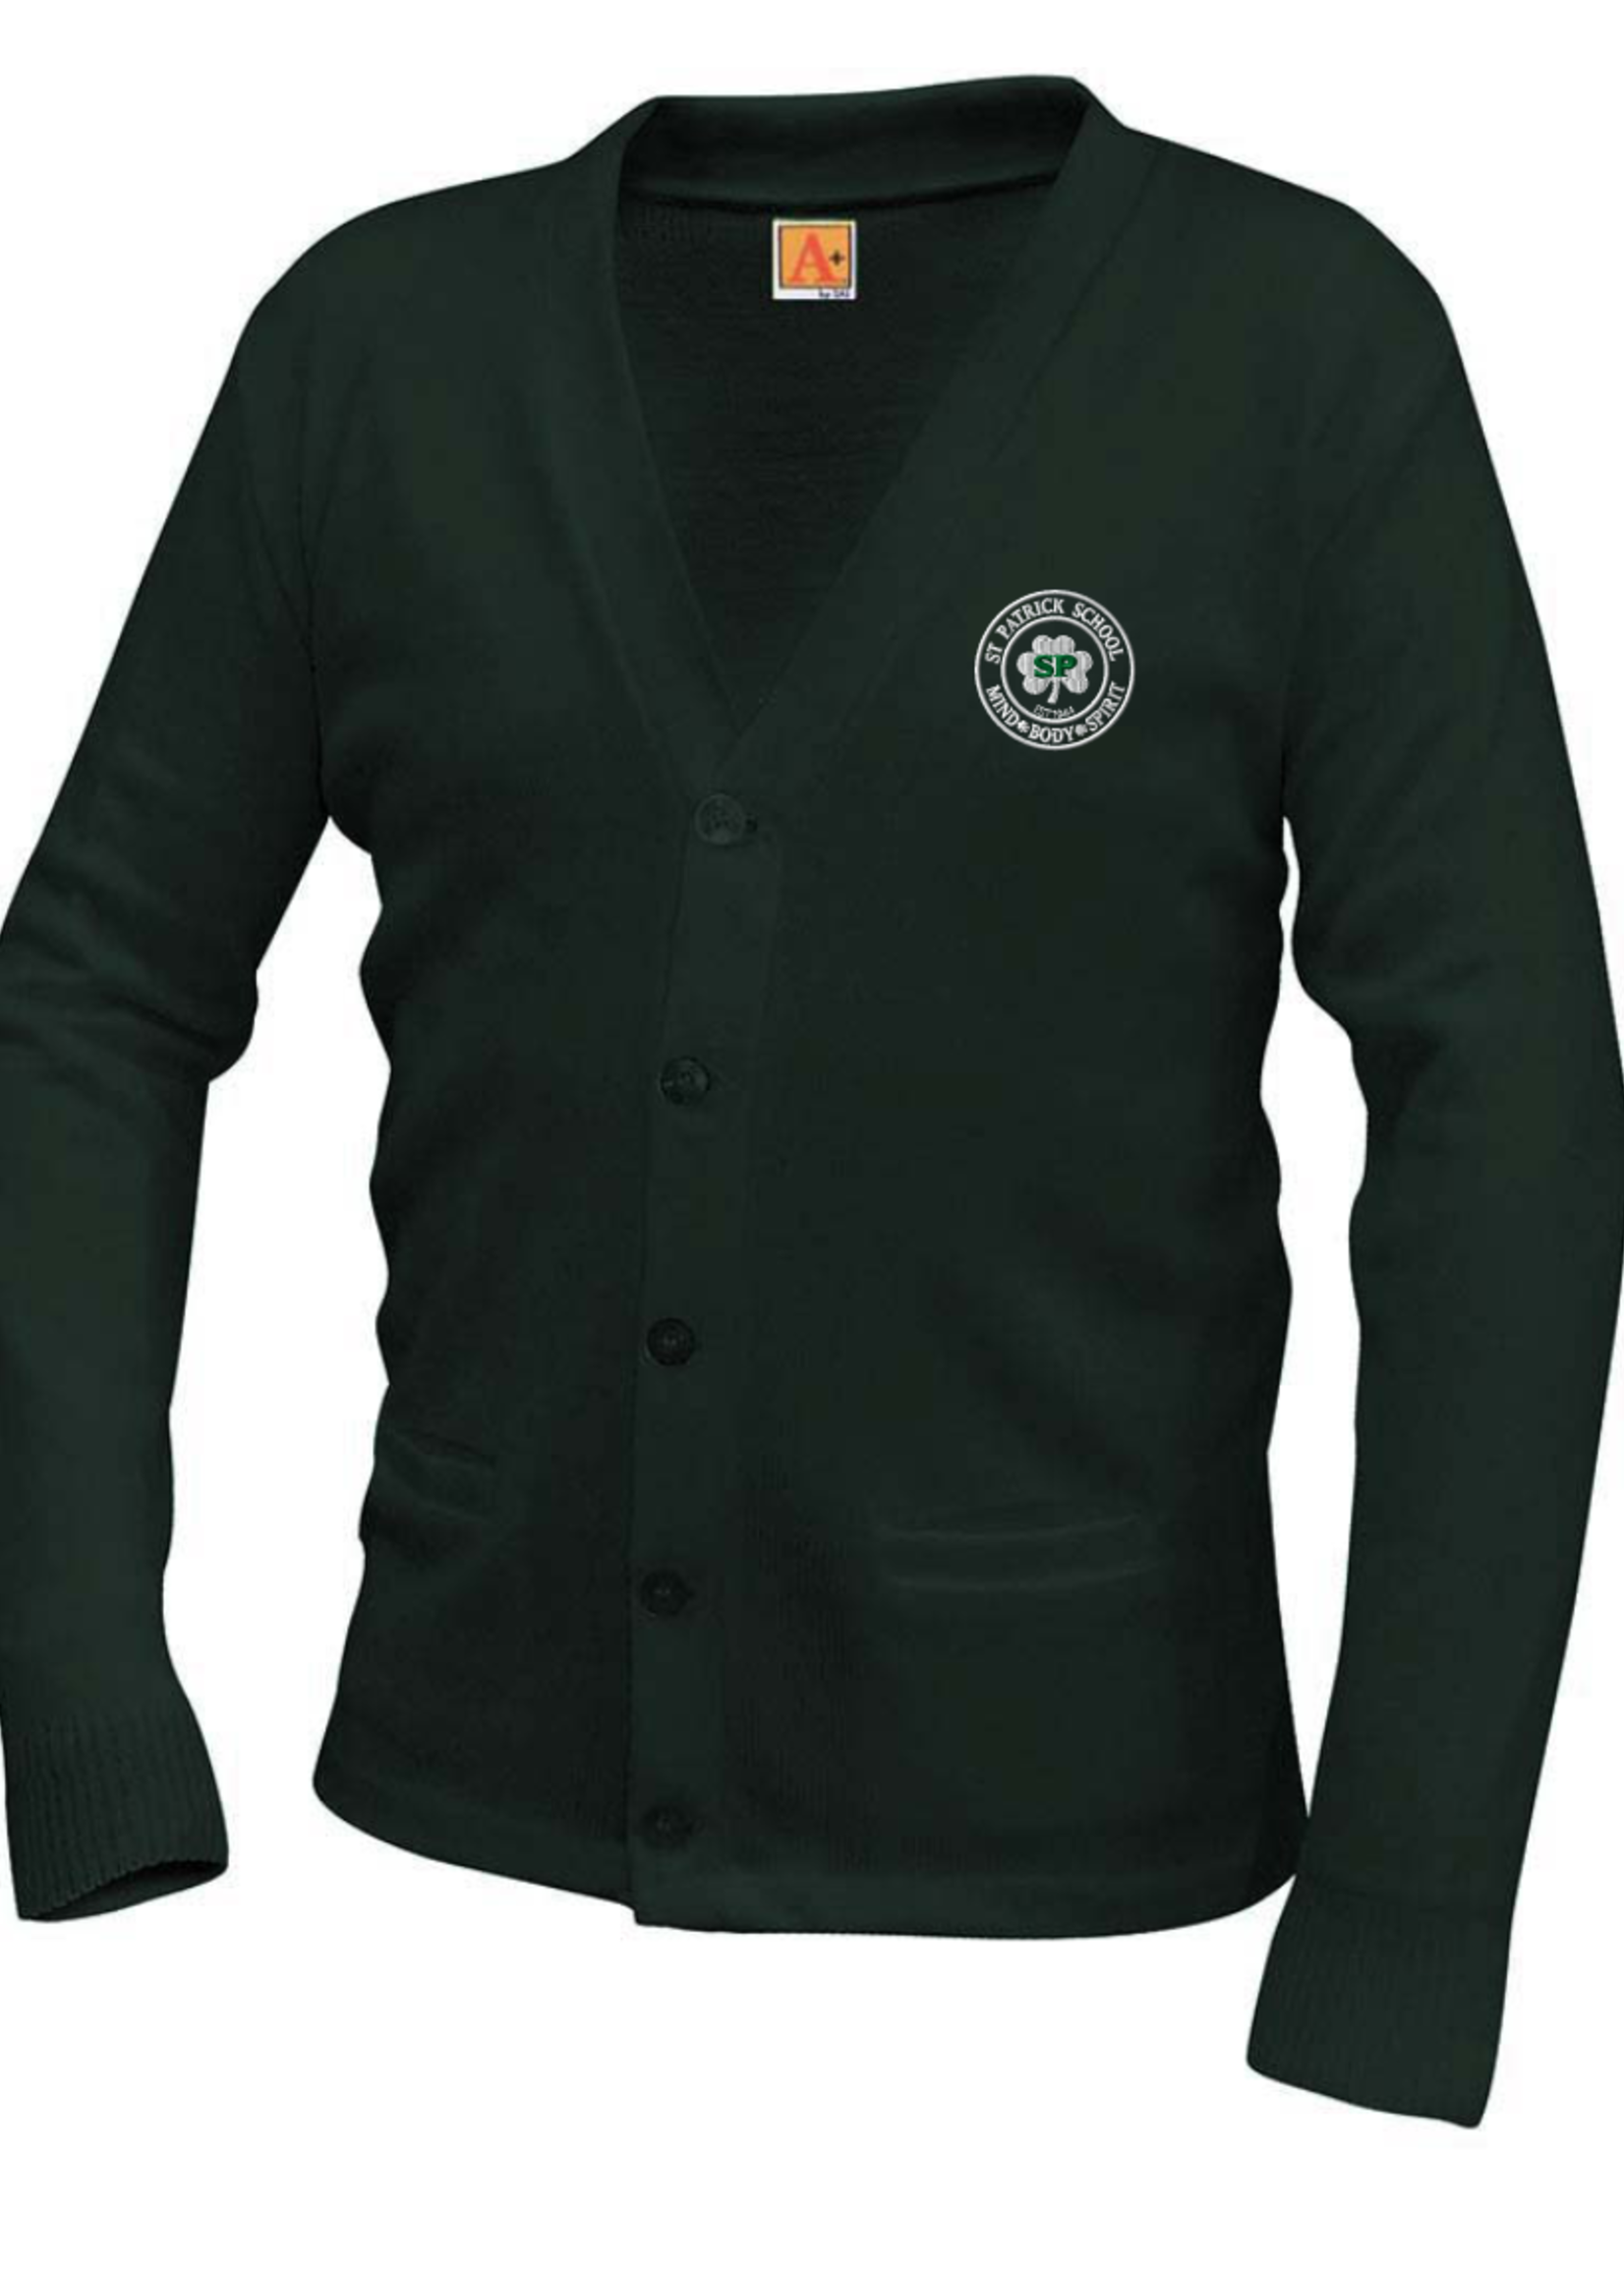 TUS SPS Forest V-neck cardigan sweater with pockets